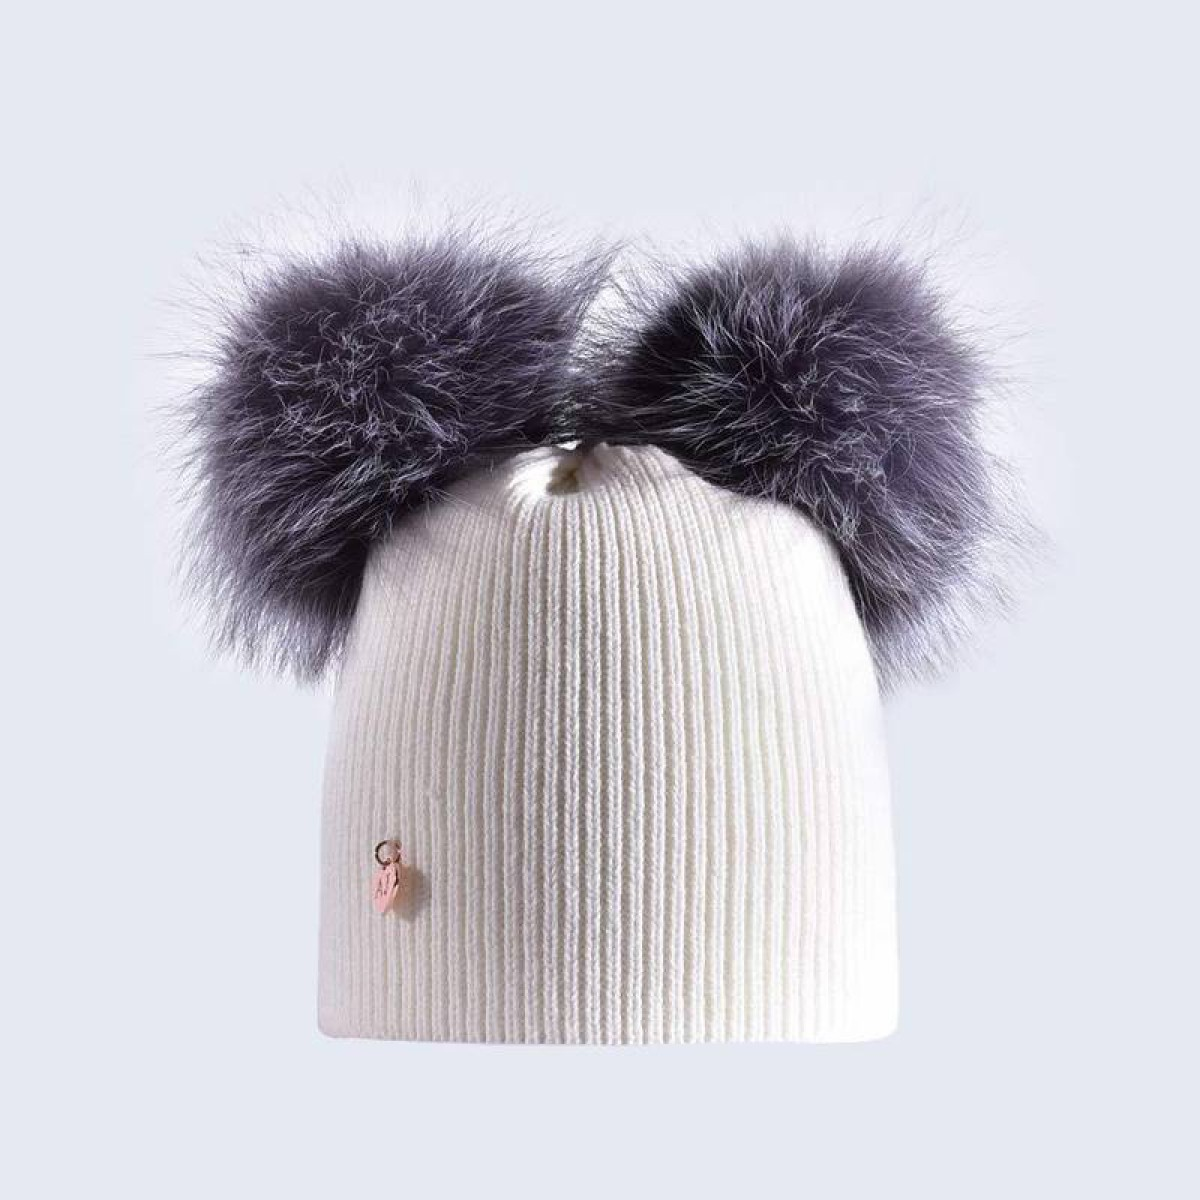 2a65064e38b Amelia Jane London Ivory Hat with Silver Fur Poms Kids- Adult Double Pom Pom